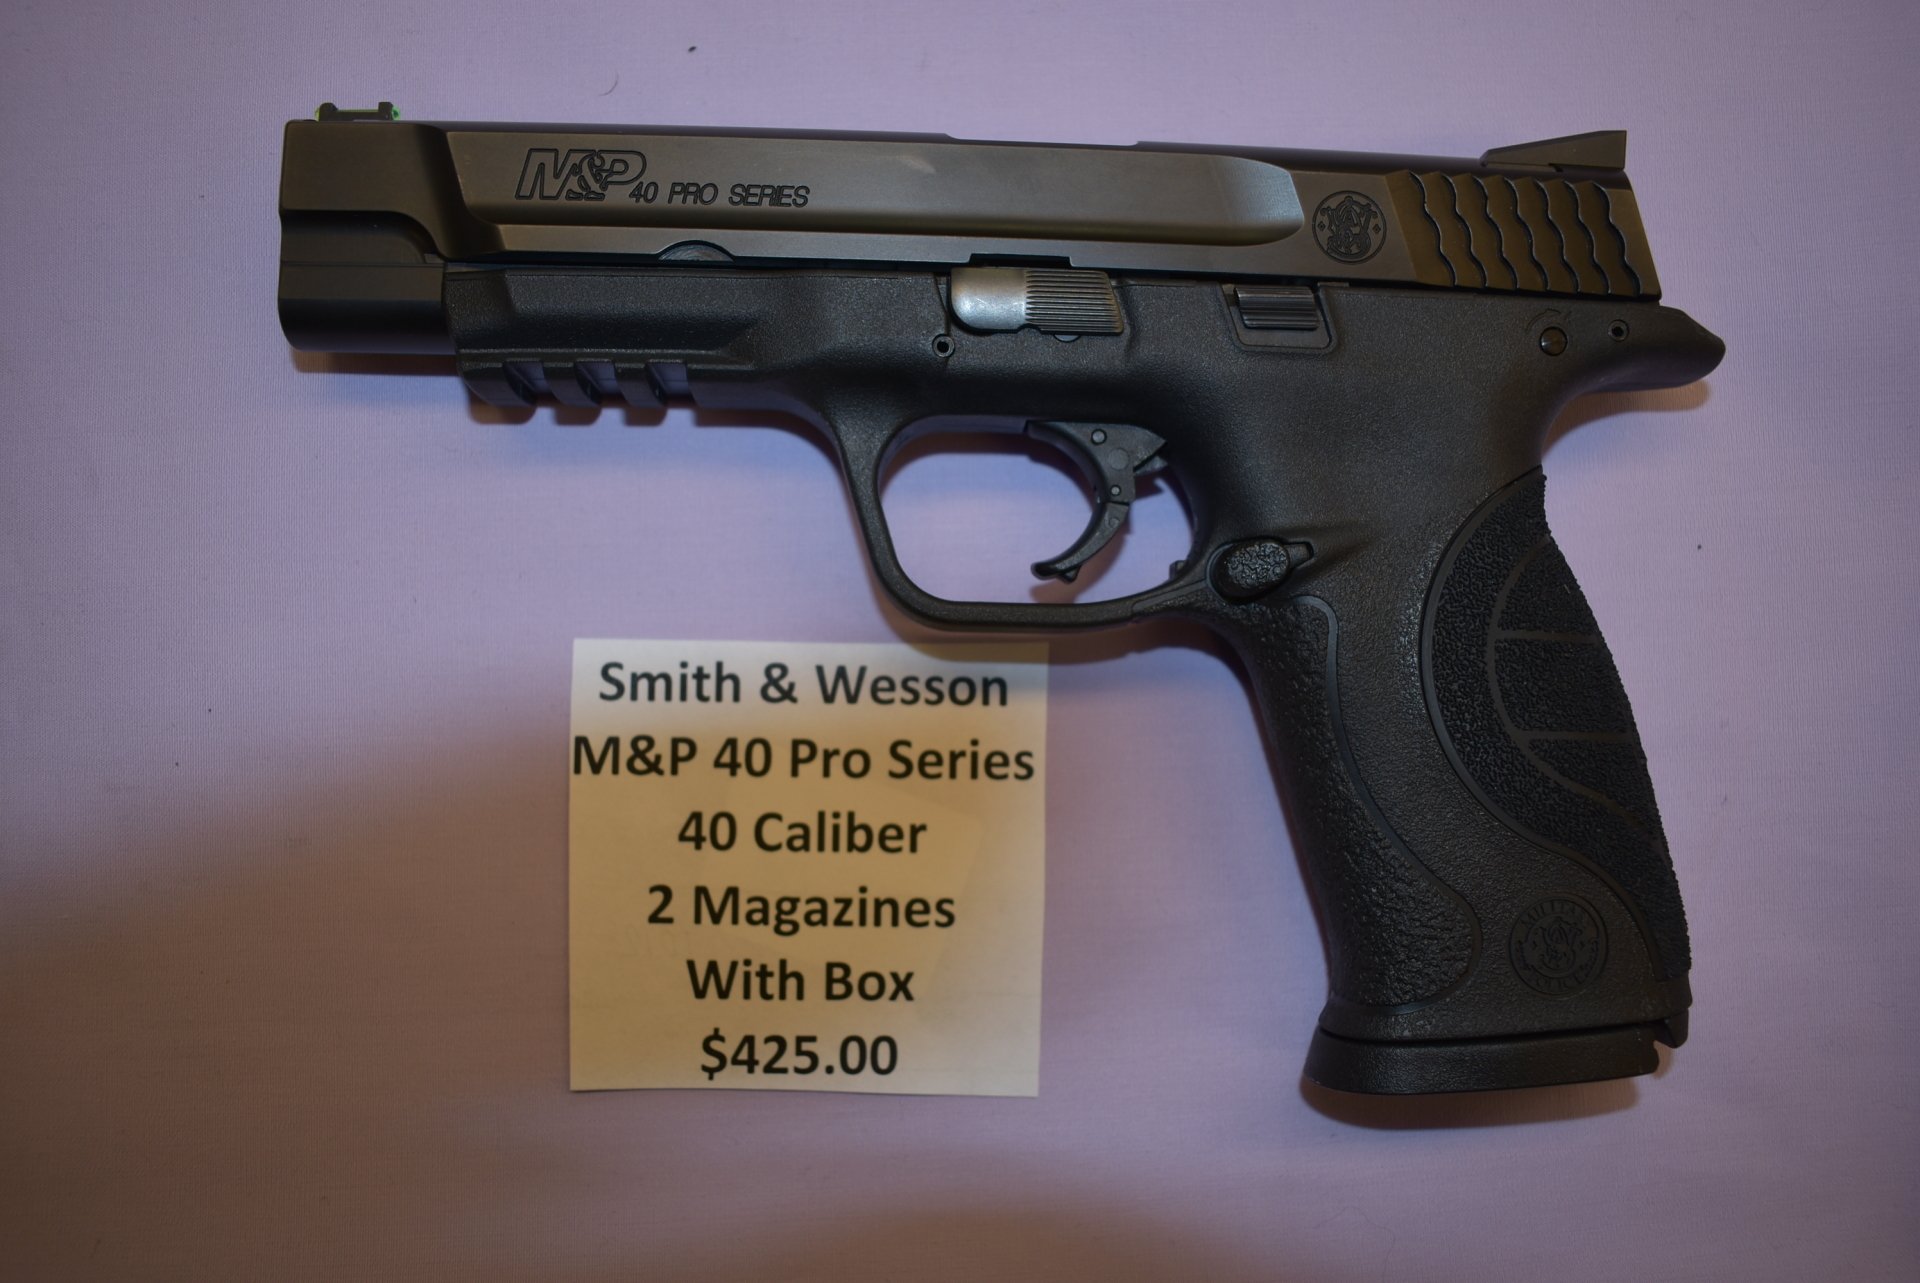 Smith & Wesson M&P 40 Pro Series